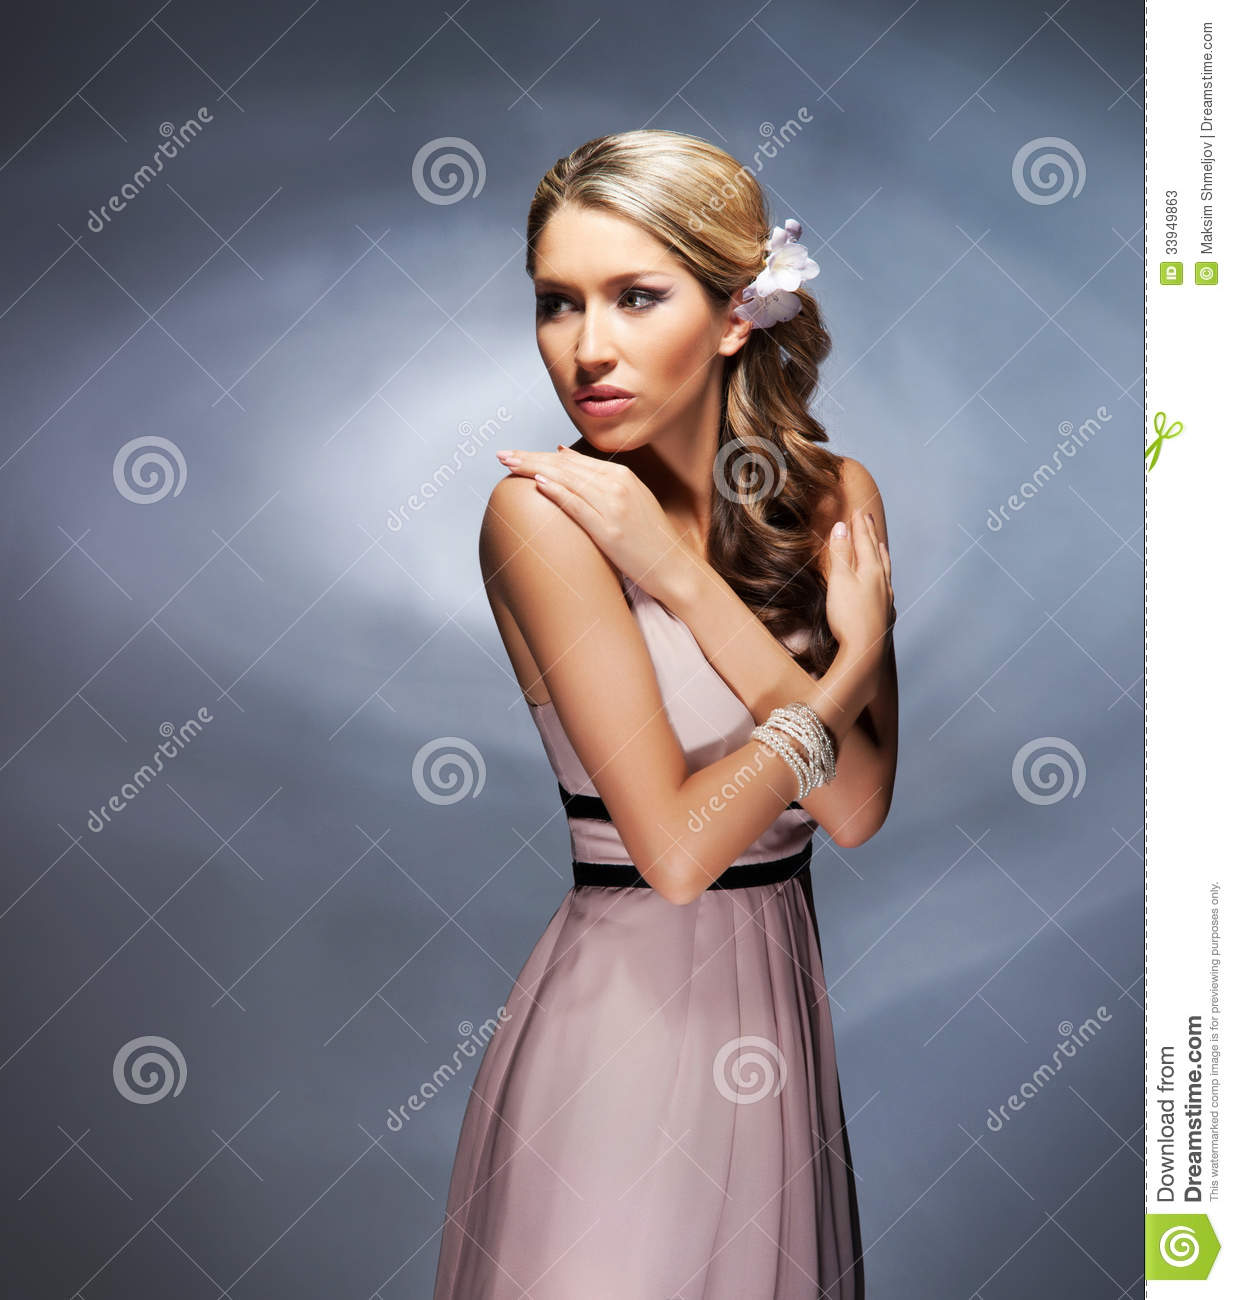 A Young Blond Woman Posing In A Pink Dress Stock Image